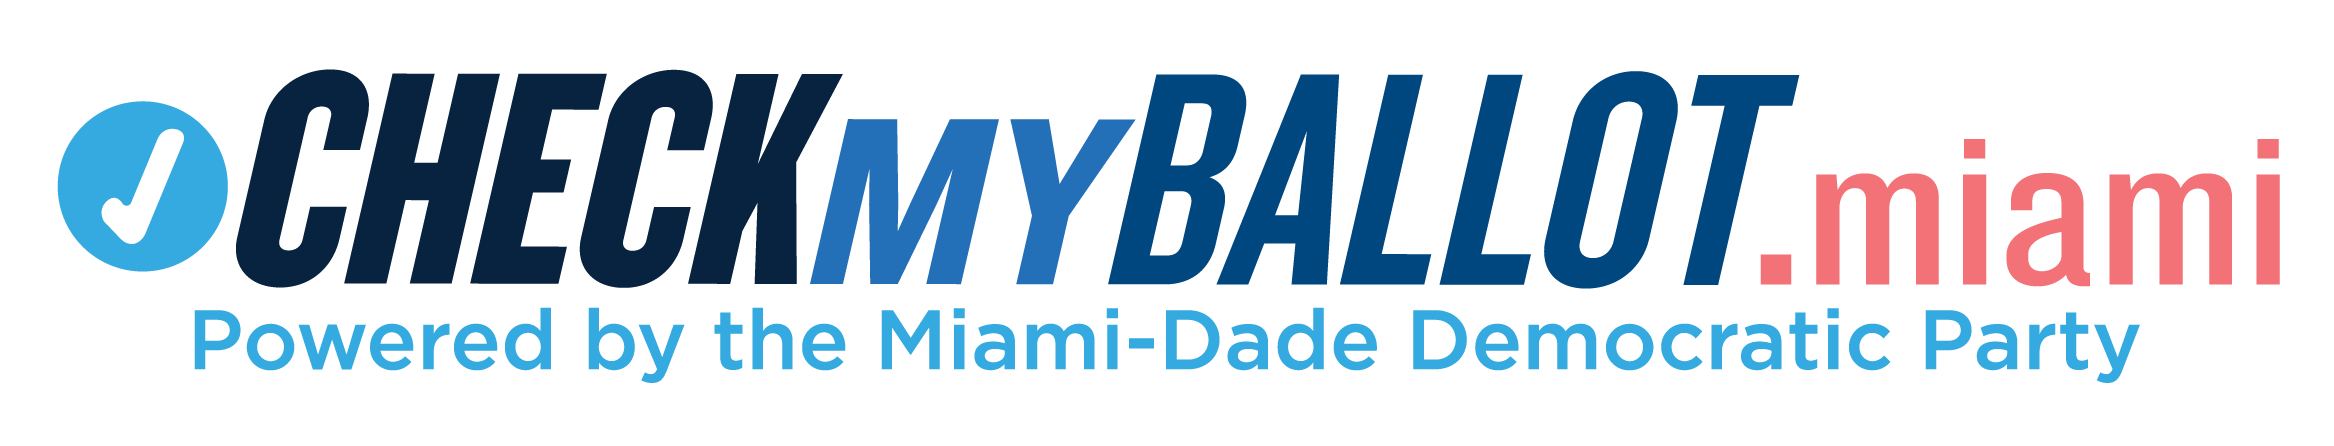 Check My Ballot Miami - Are you signed up to receive your ballot in July?